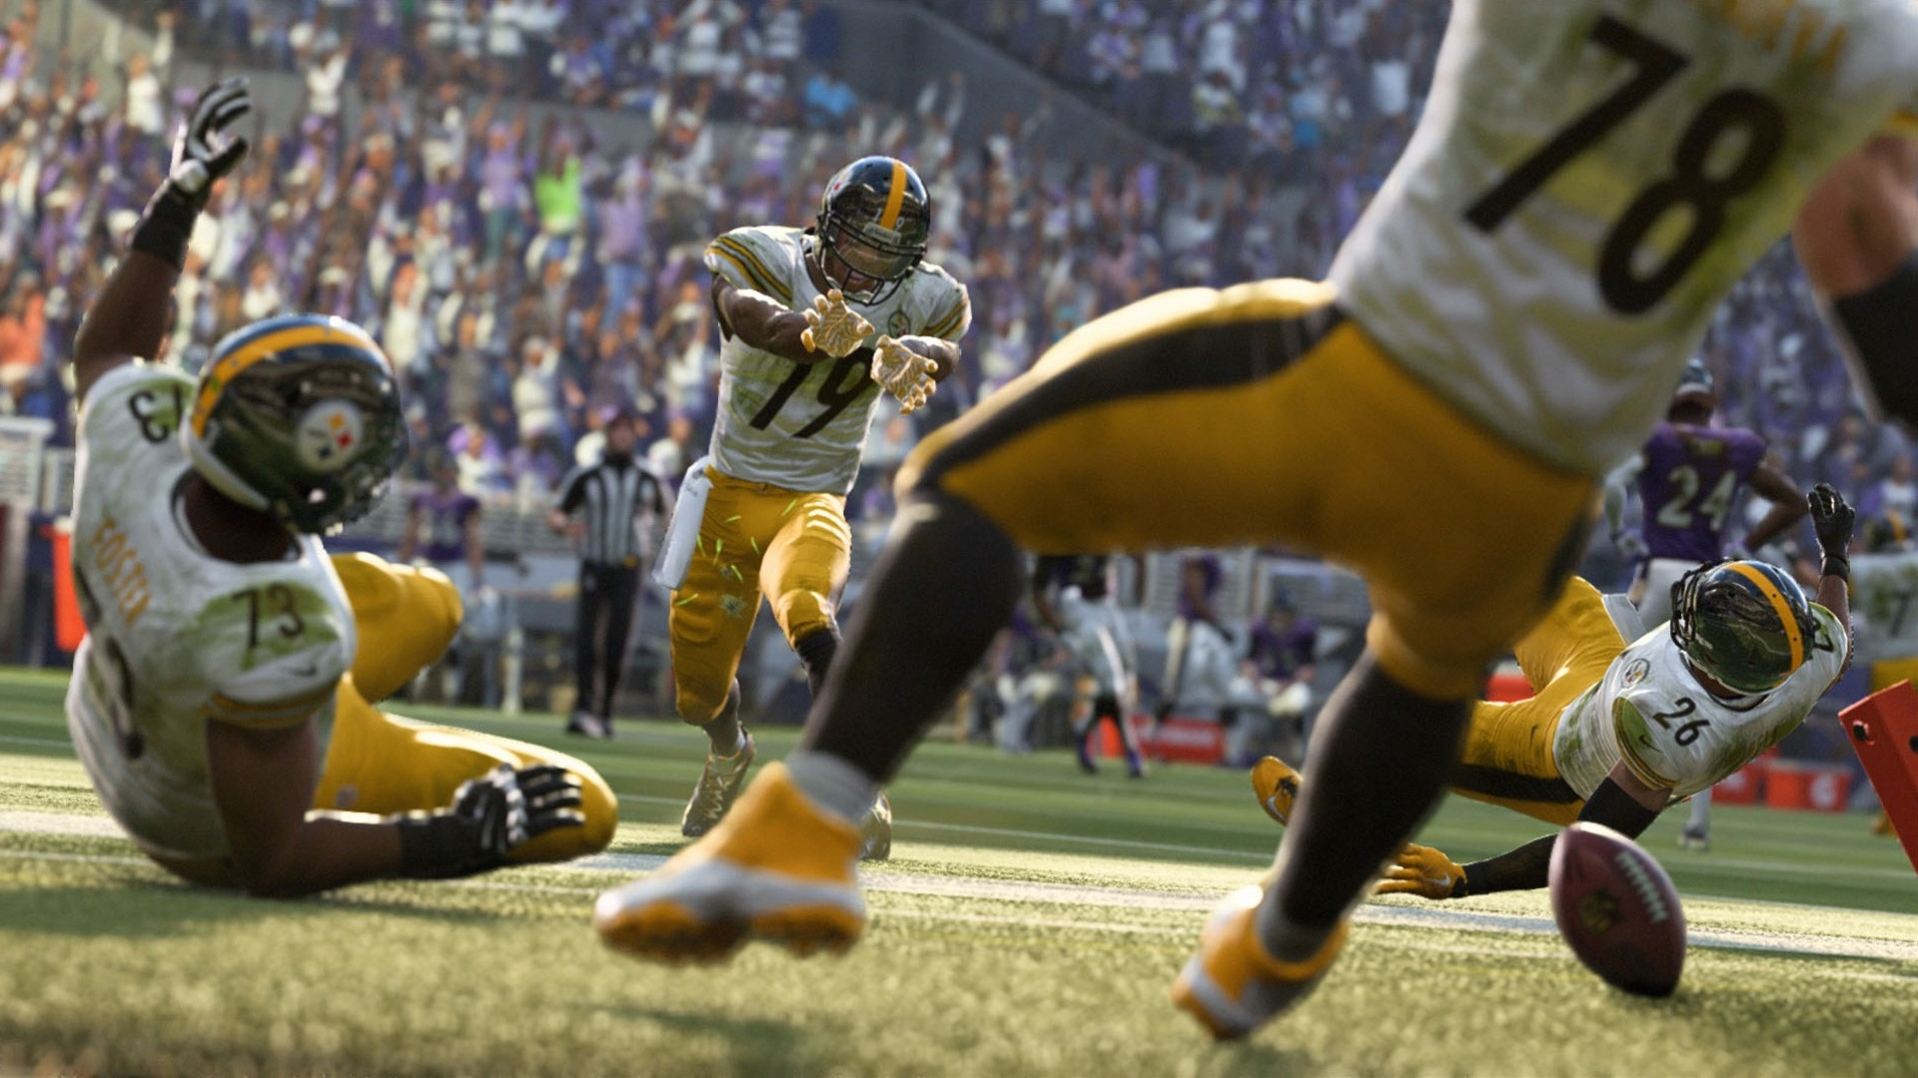 Madden 2019 PC system requirements - releases early on